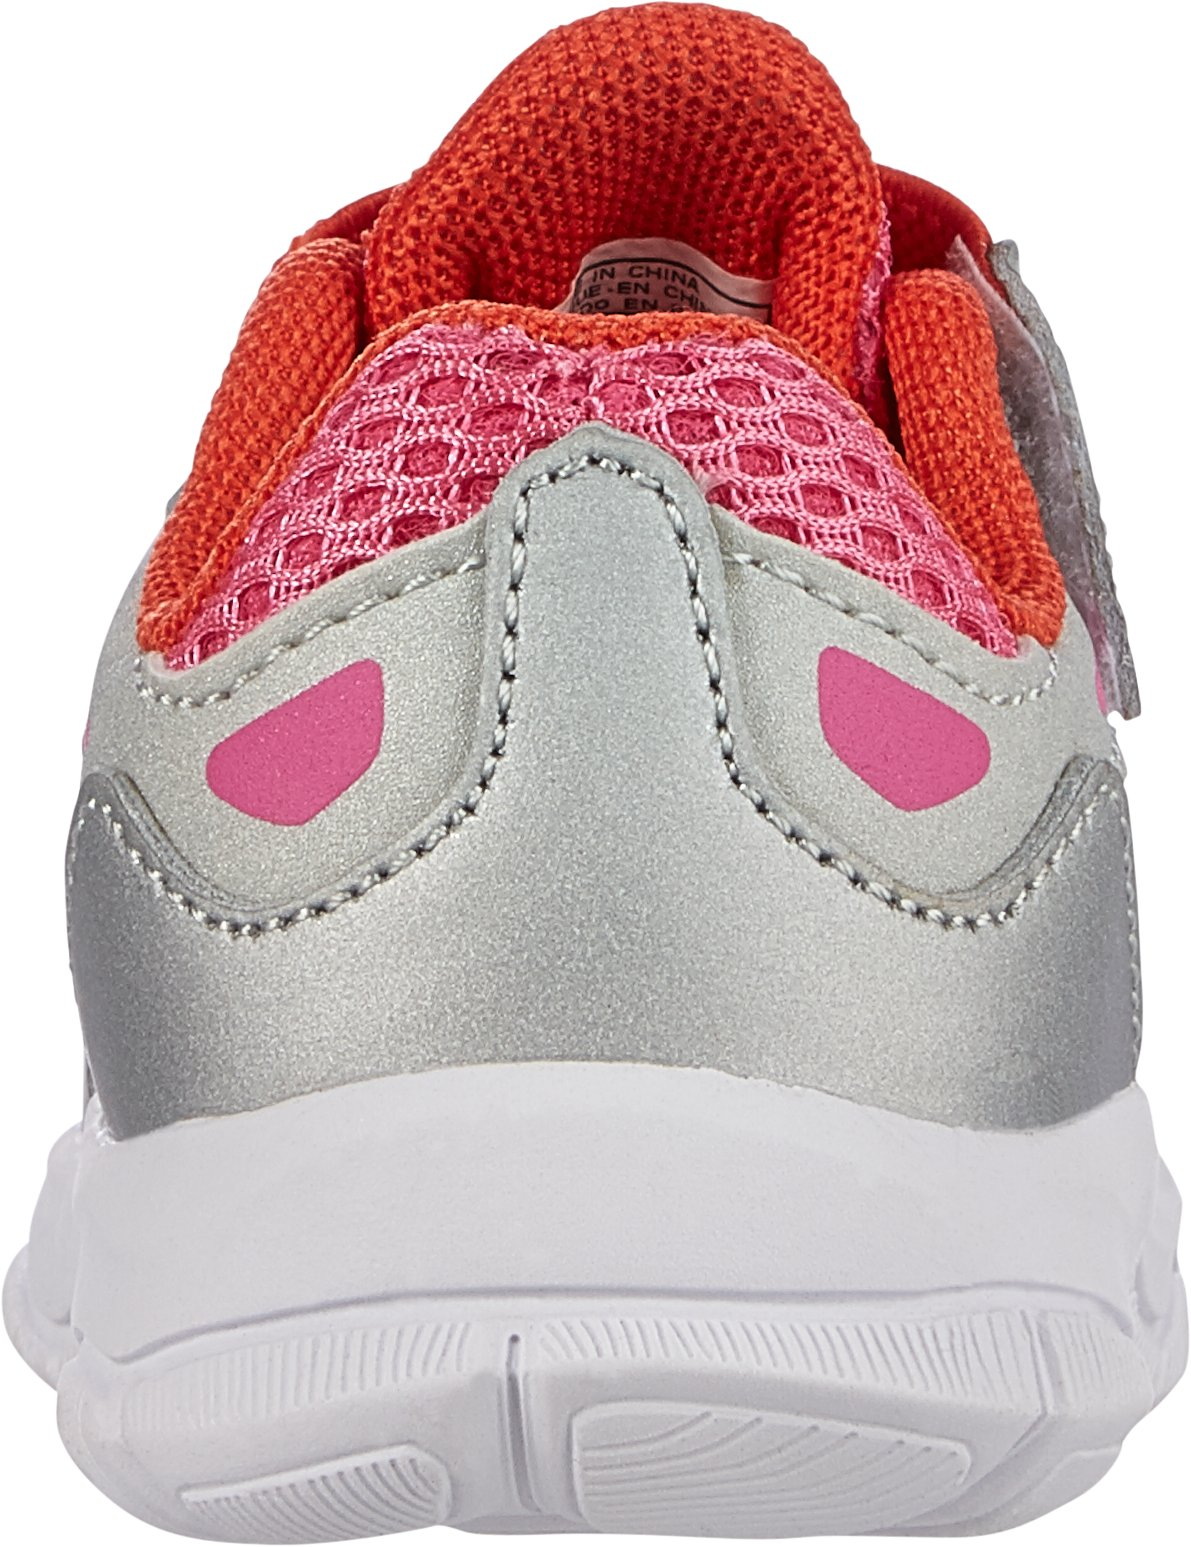 Girls' Infant UA Engage Running Shoe, Metallic Silver